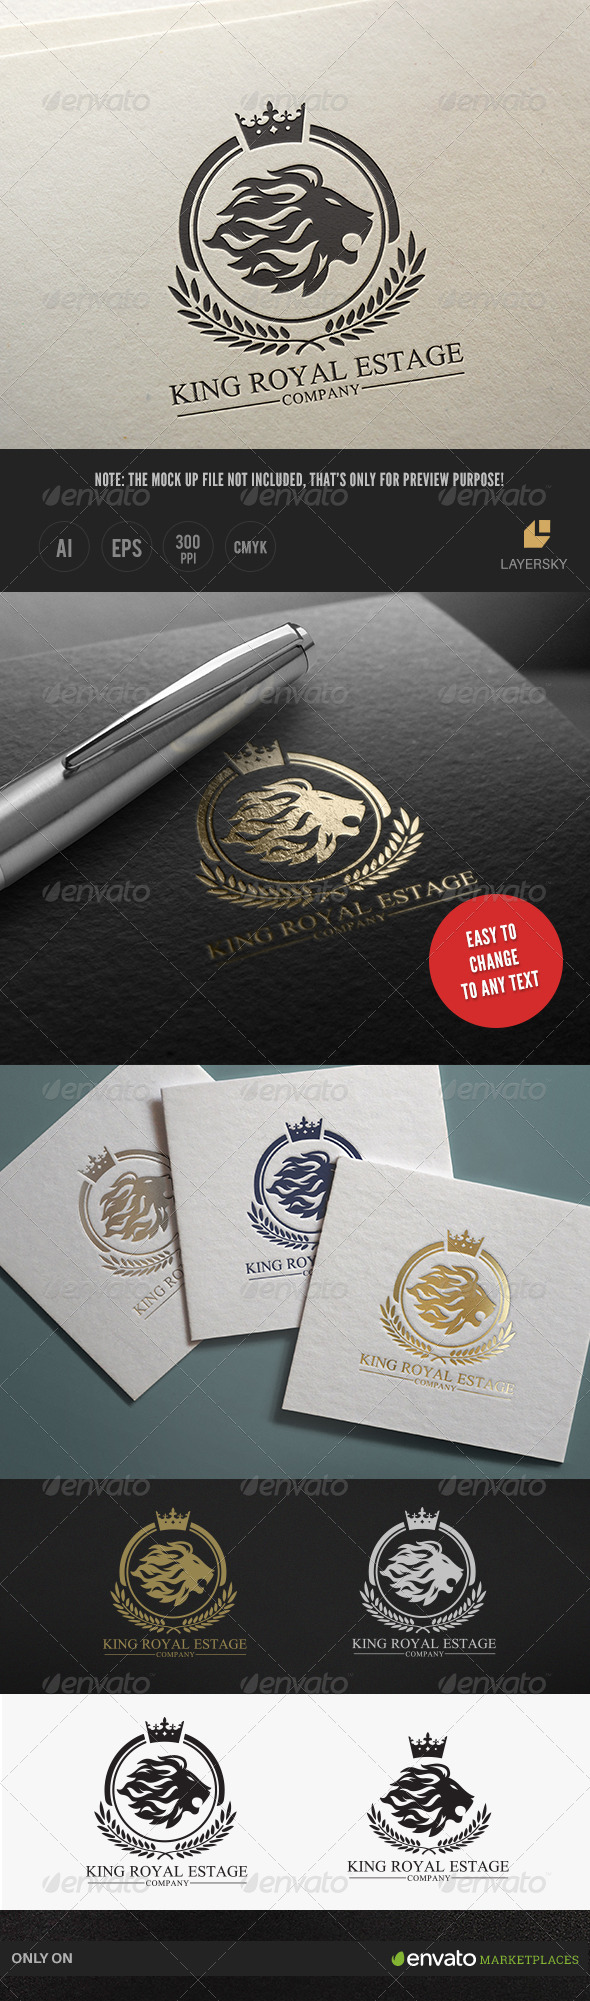 GraphicRiver King Royal Estate 7930978